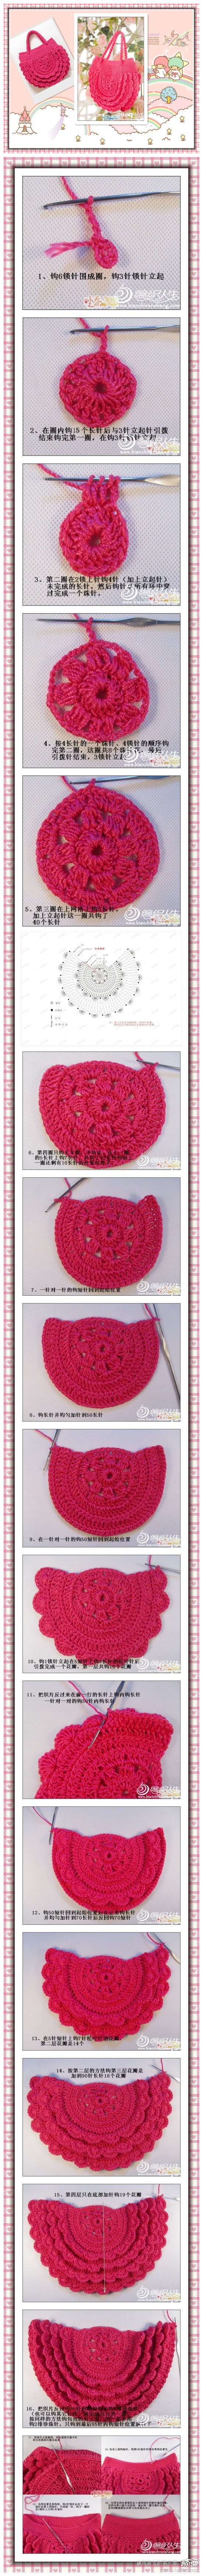 I don't understand this language, but I think I can crochet this just from looking at it!  Pretty cute!